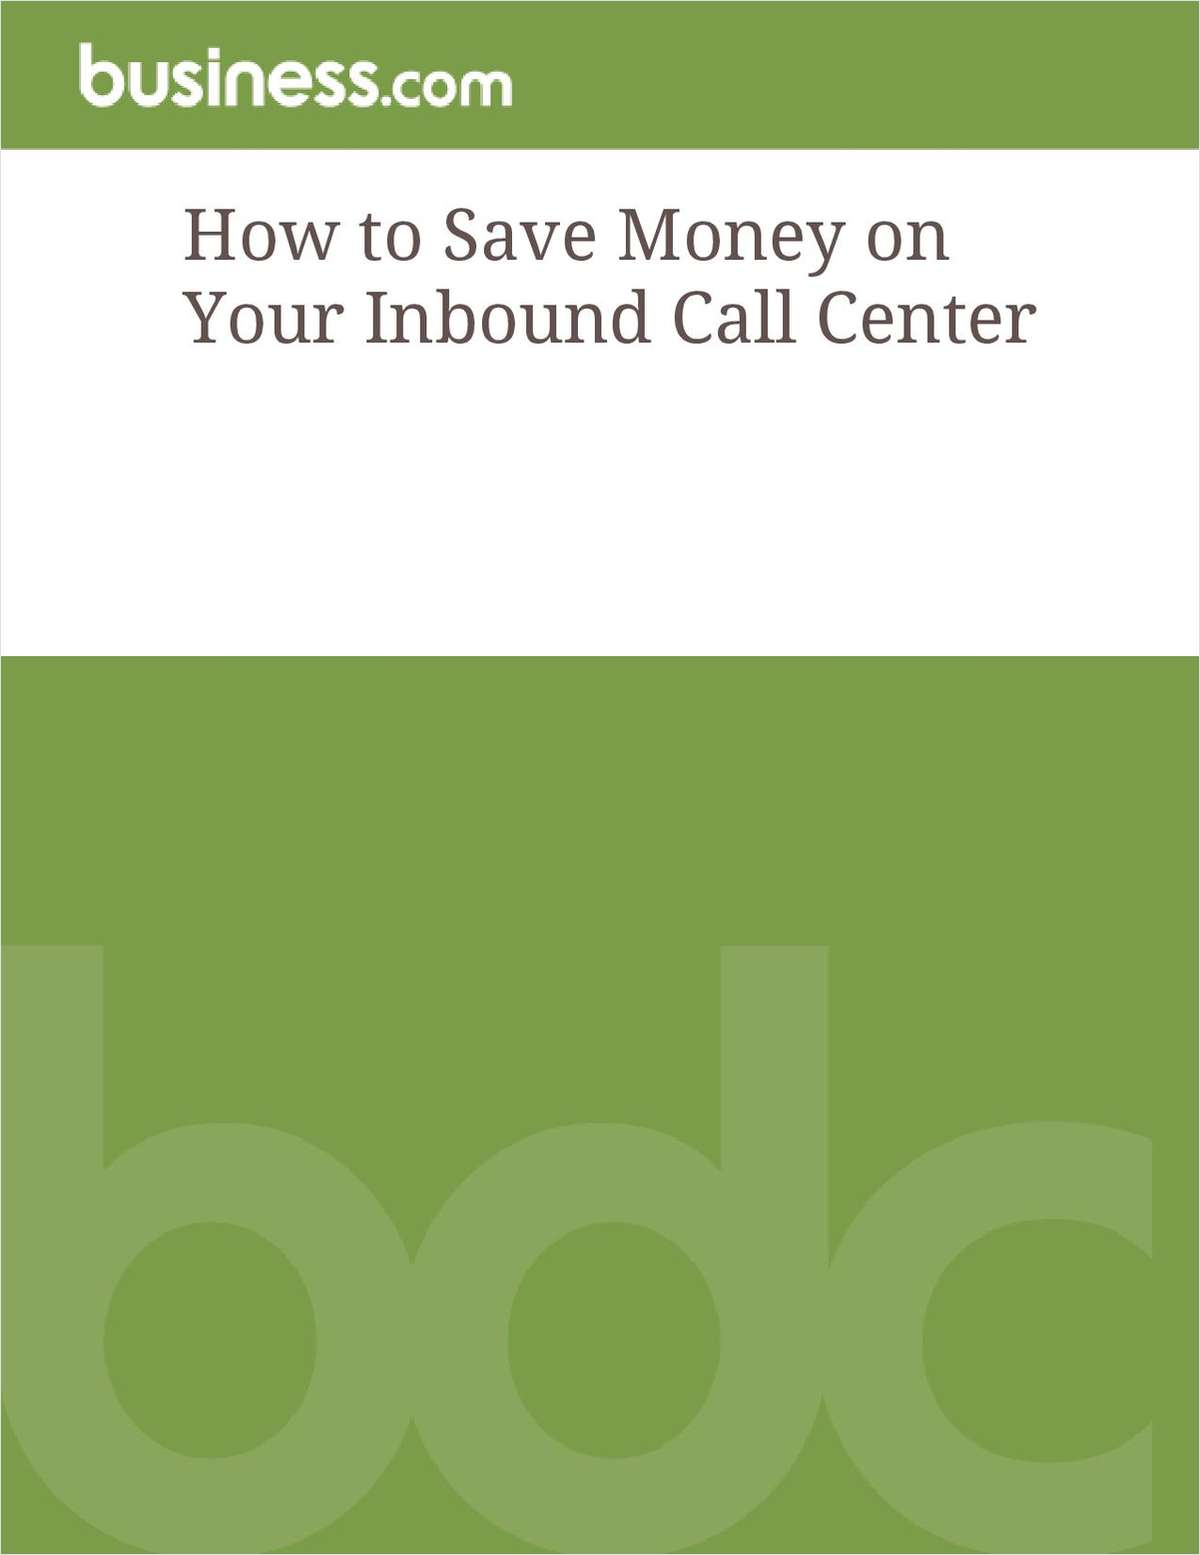 How to Save Money on Your Inbound Call Center